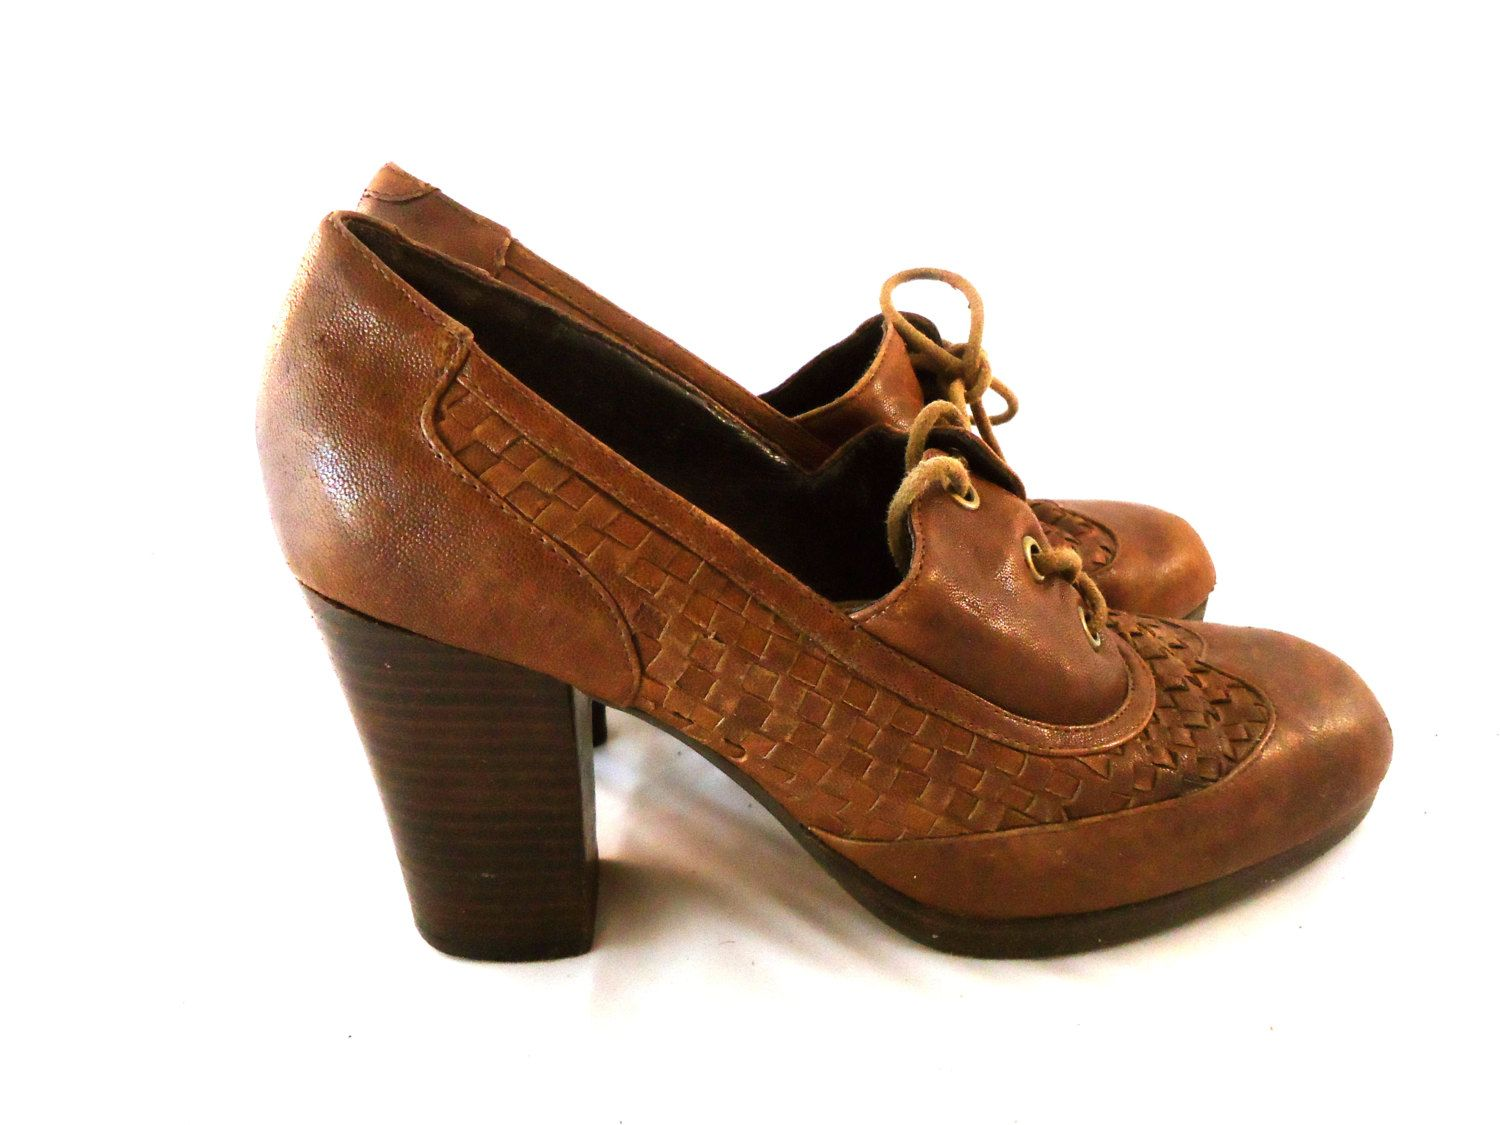 7ca99bfbbe96 Jeffrey Campbell Cognac Leather Lace Up Wing Tip Loafer Brogues w  Braided  Cognac Leather Chunky Stacked Wood Heels Shoes Size 8.5M 39 by aintweswank  on ...